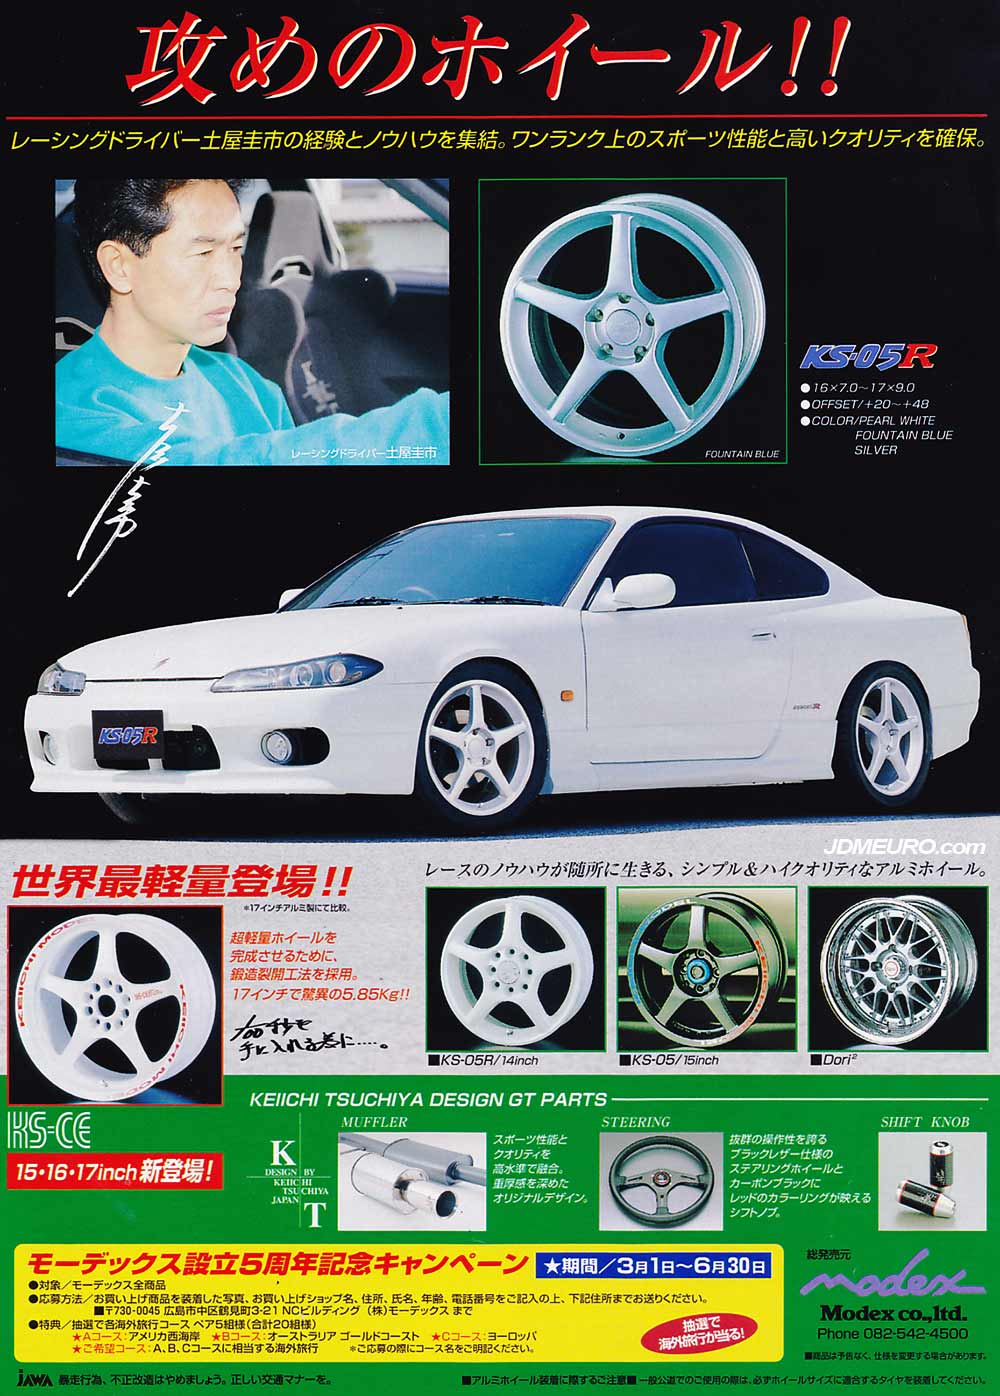 Modex KS-05R & Modex Dori Dori by SSR Wheels - JDM Wheels